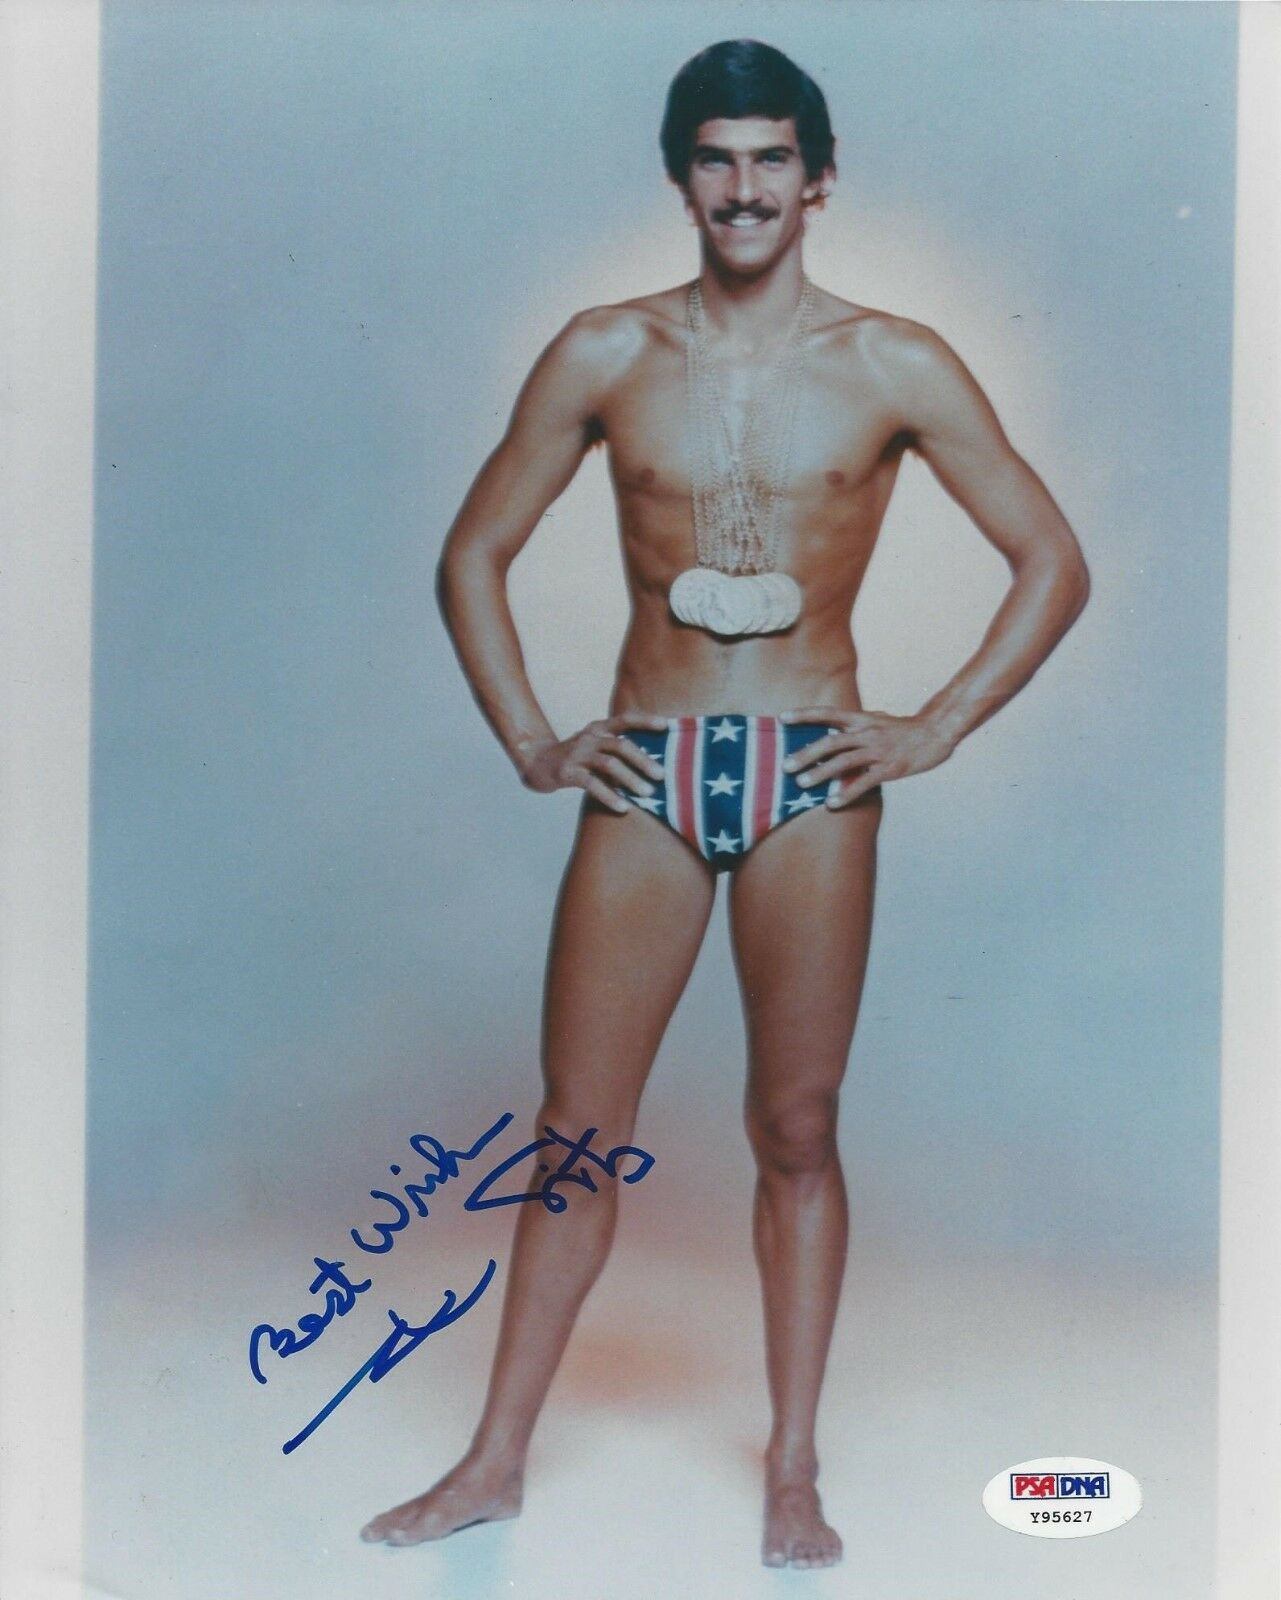 Mark Spitz Nine-Time Olympic Champion Signed 8x10 Photo - PSA/DNA # Y95627